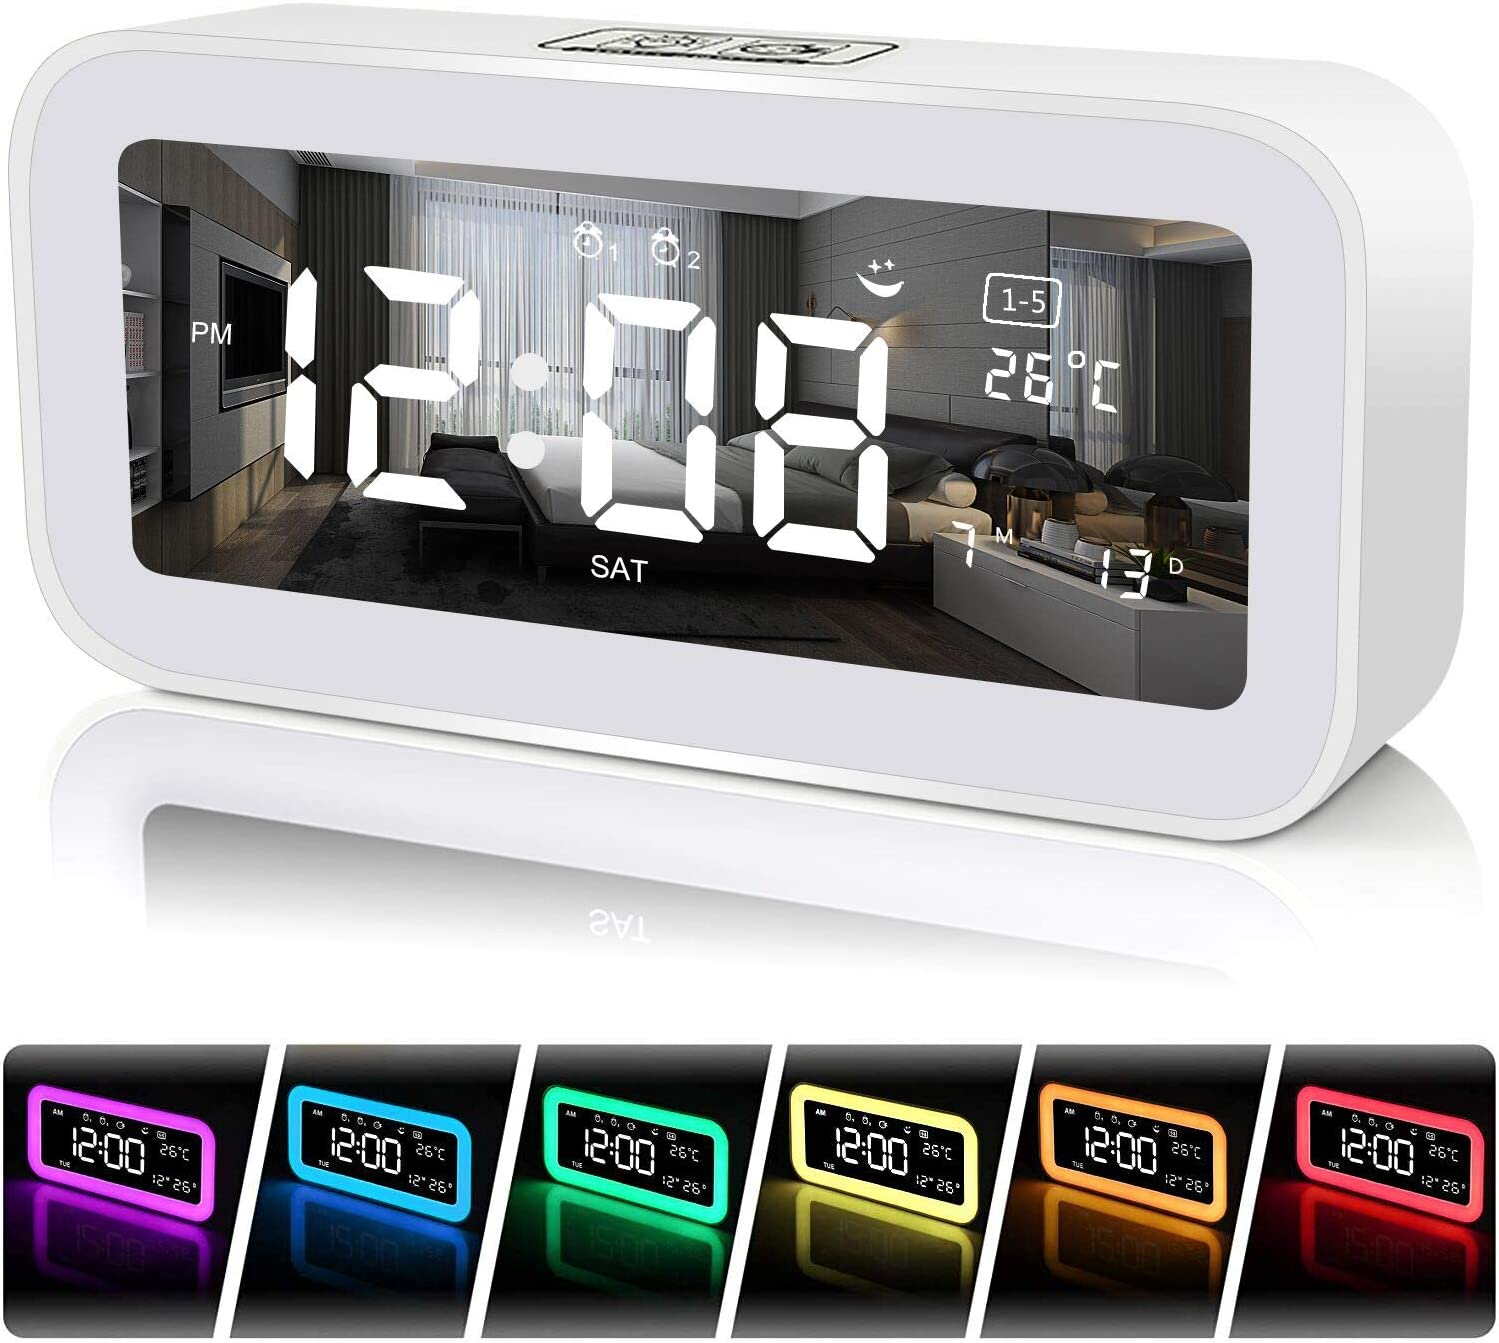 FastDeng Digital Clock-Sunrise Alarm Clocks for Bedroom with USB Ports - Wake Up Light Alarm Clock,Snooze,Dimmer 7 Colors, Night Light,Dual Alarm Clocks for Heavy Sleepers, Kids (White)